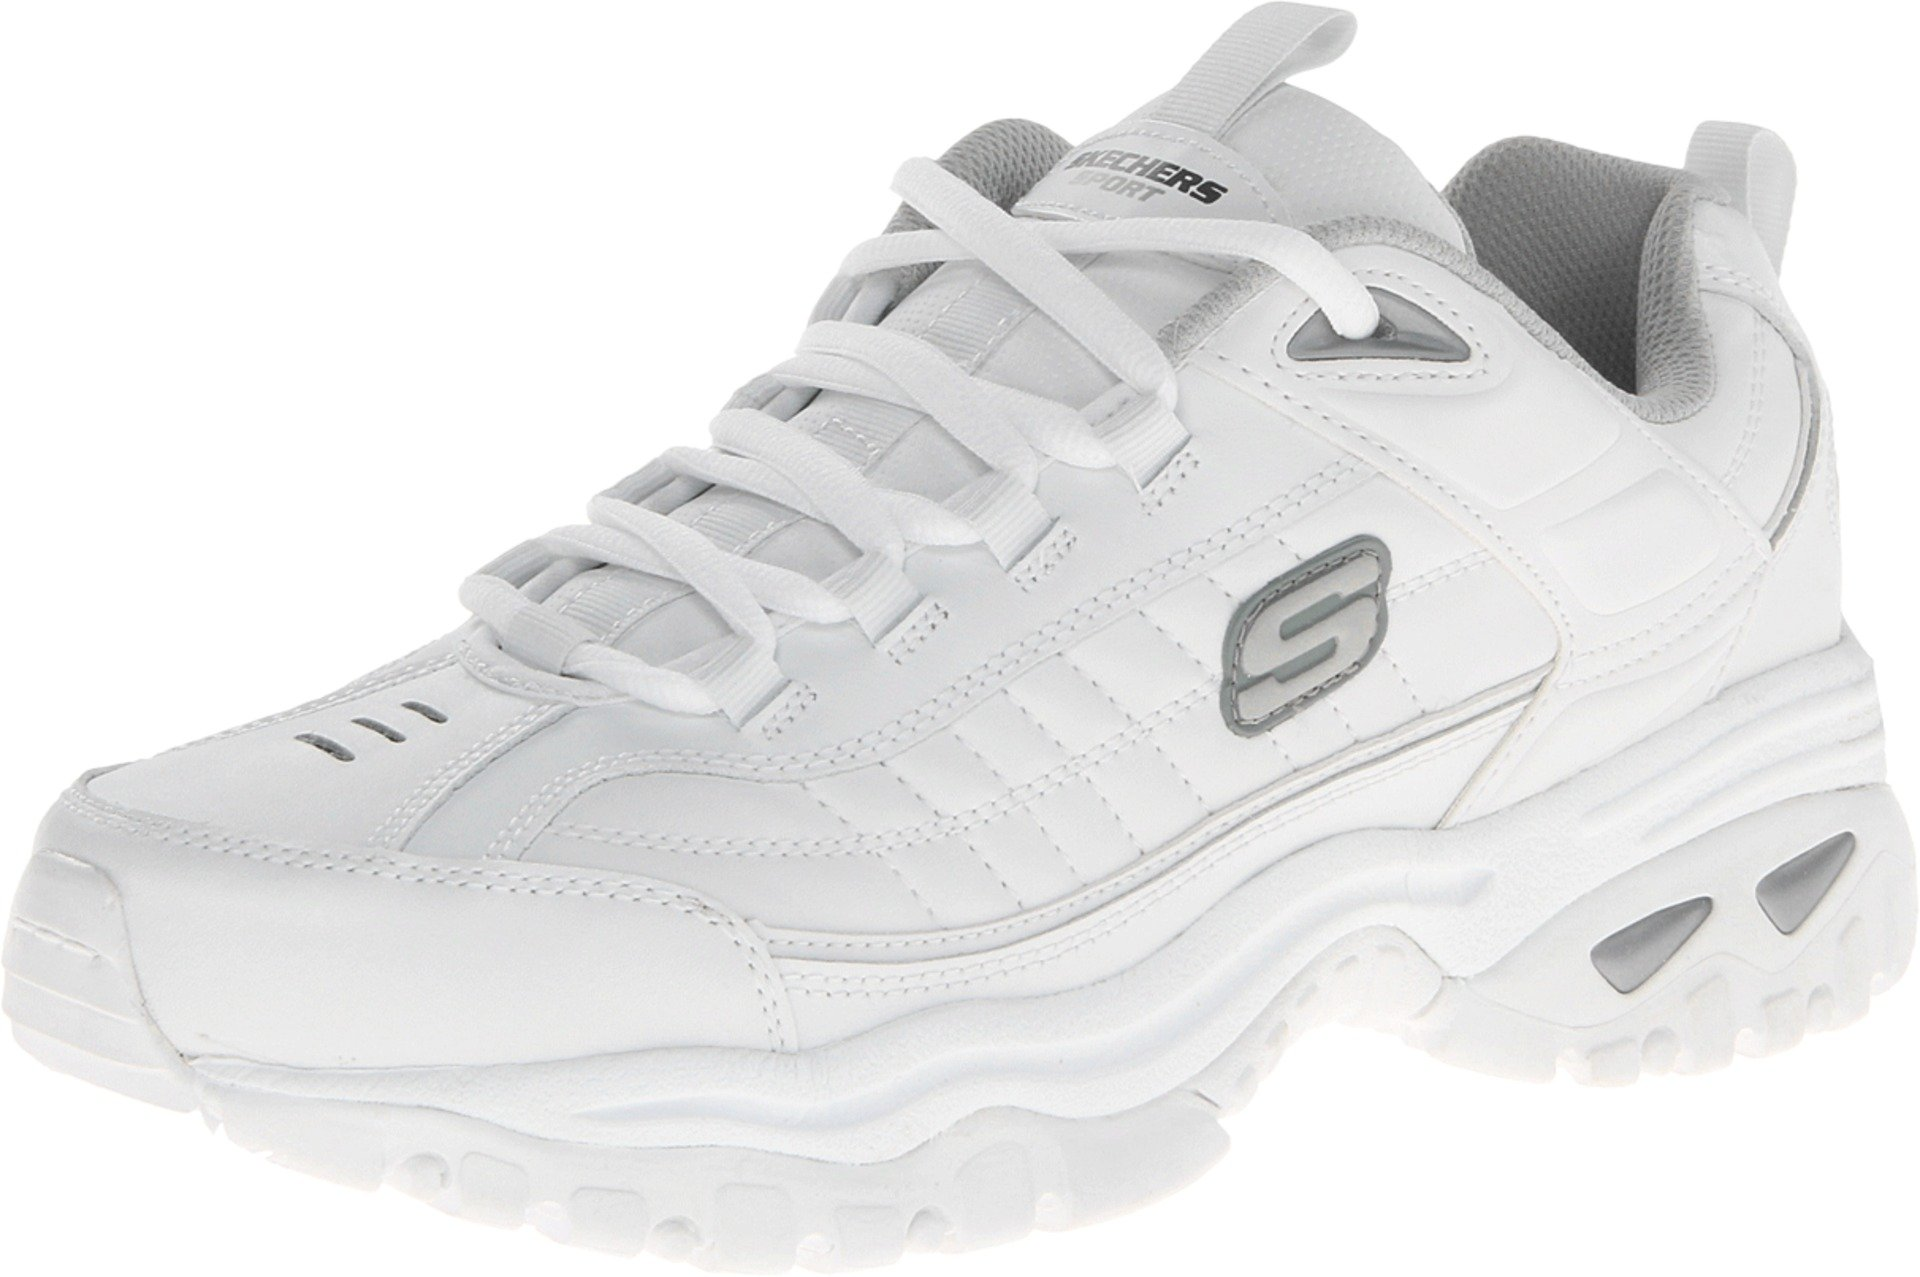 Skechers Men's Energy Afterburn Lace-Up Sneaker,White,10 M US by Skechers